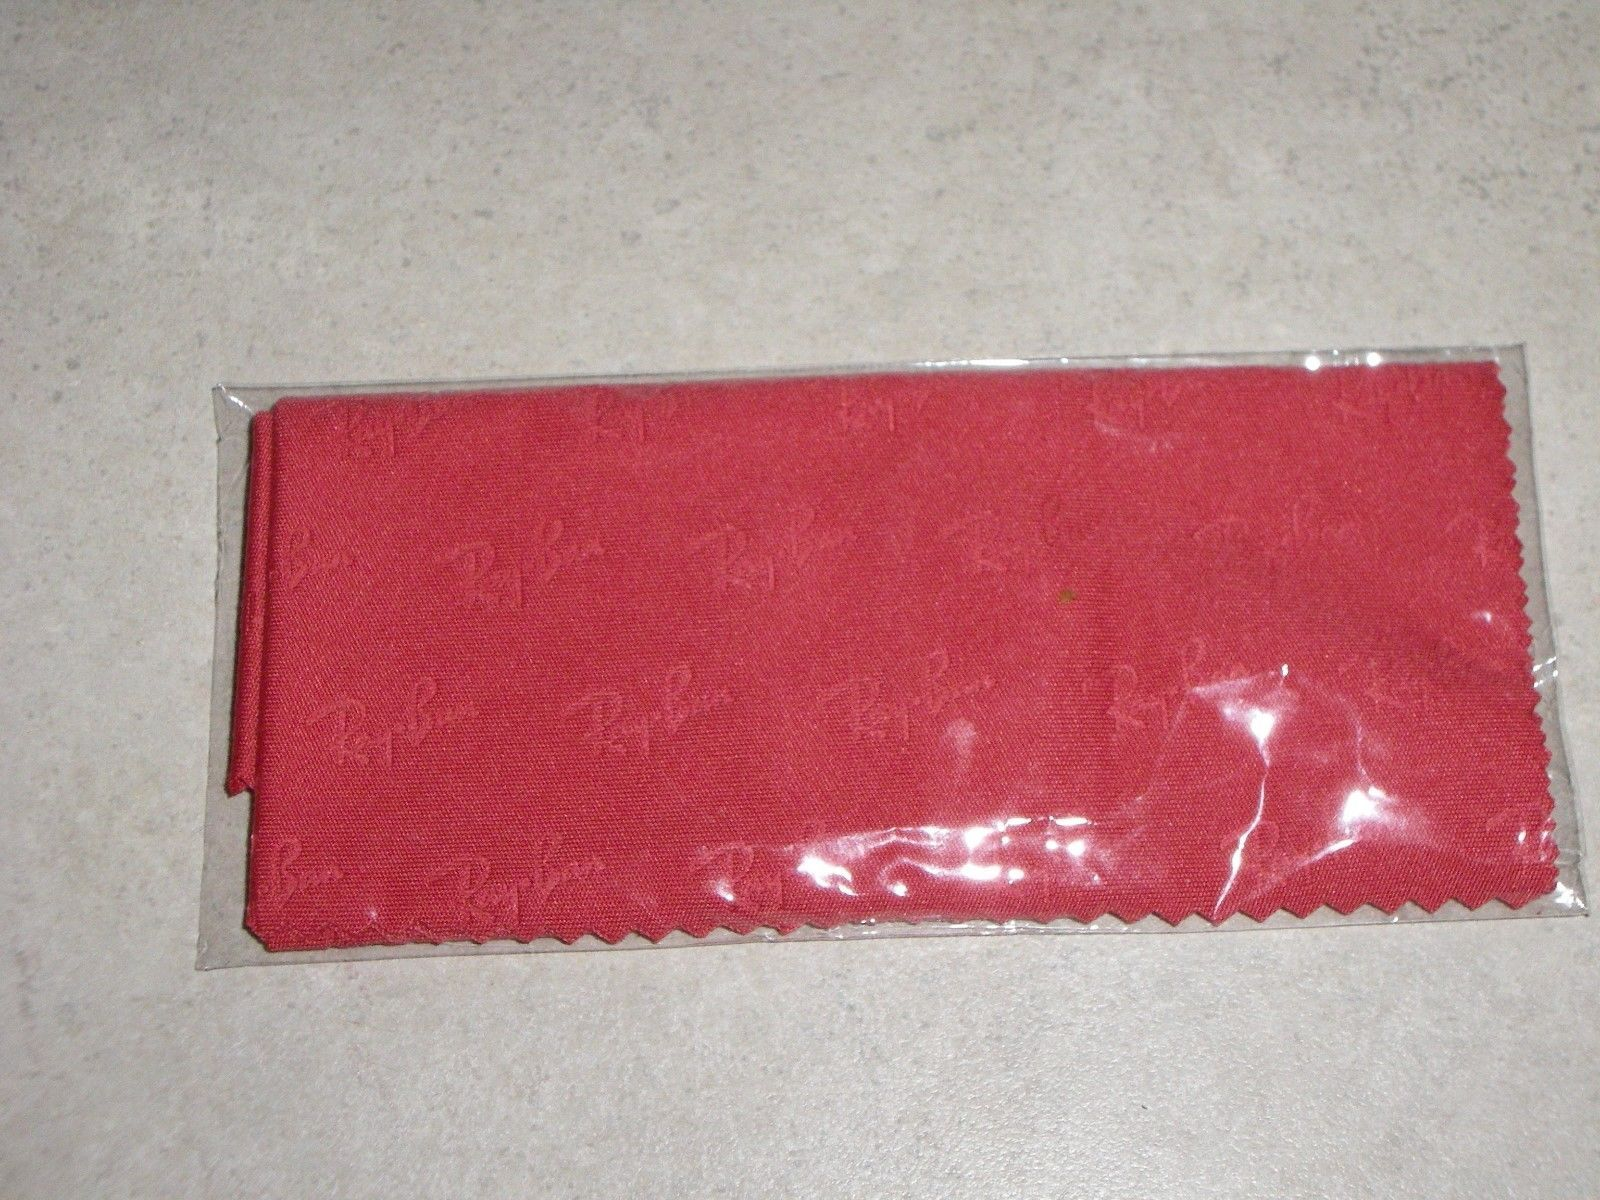 Authentic ray ban lg red micro fiber cleaning cloth brand new with